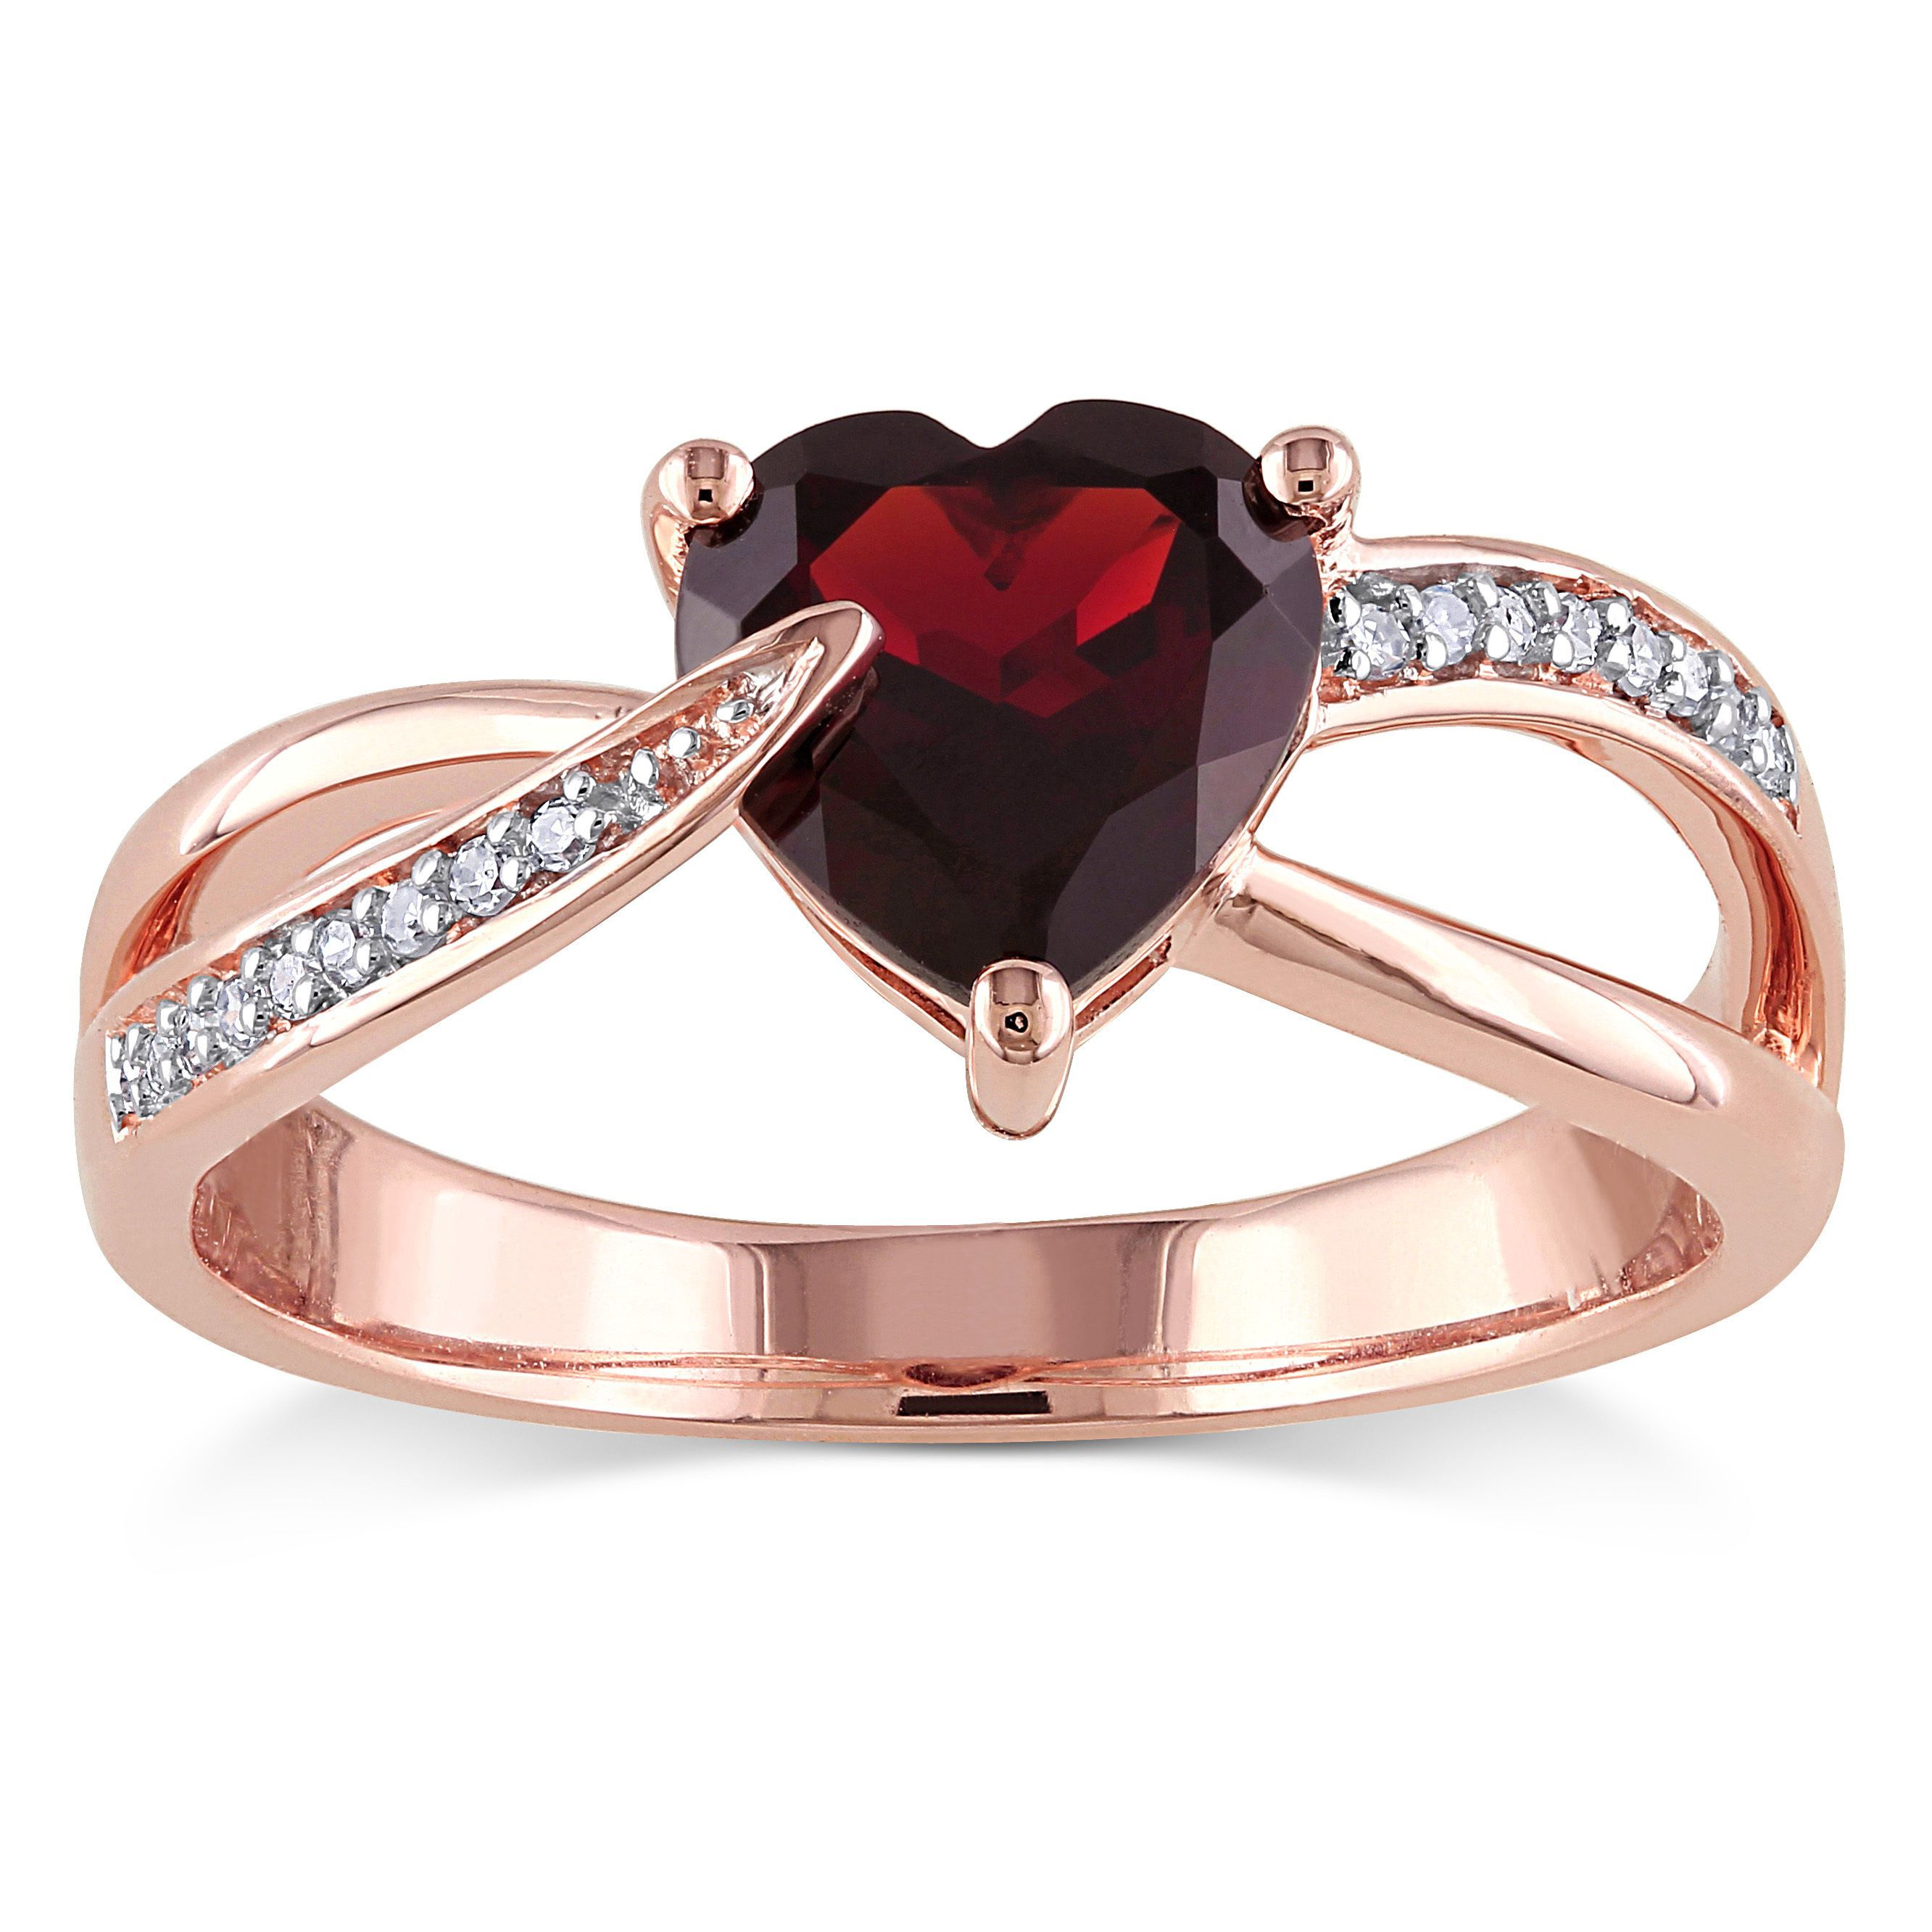 Miadora 10k Rose Gold Garnet and Diamond Accent Heart Ring Size 9